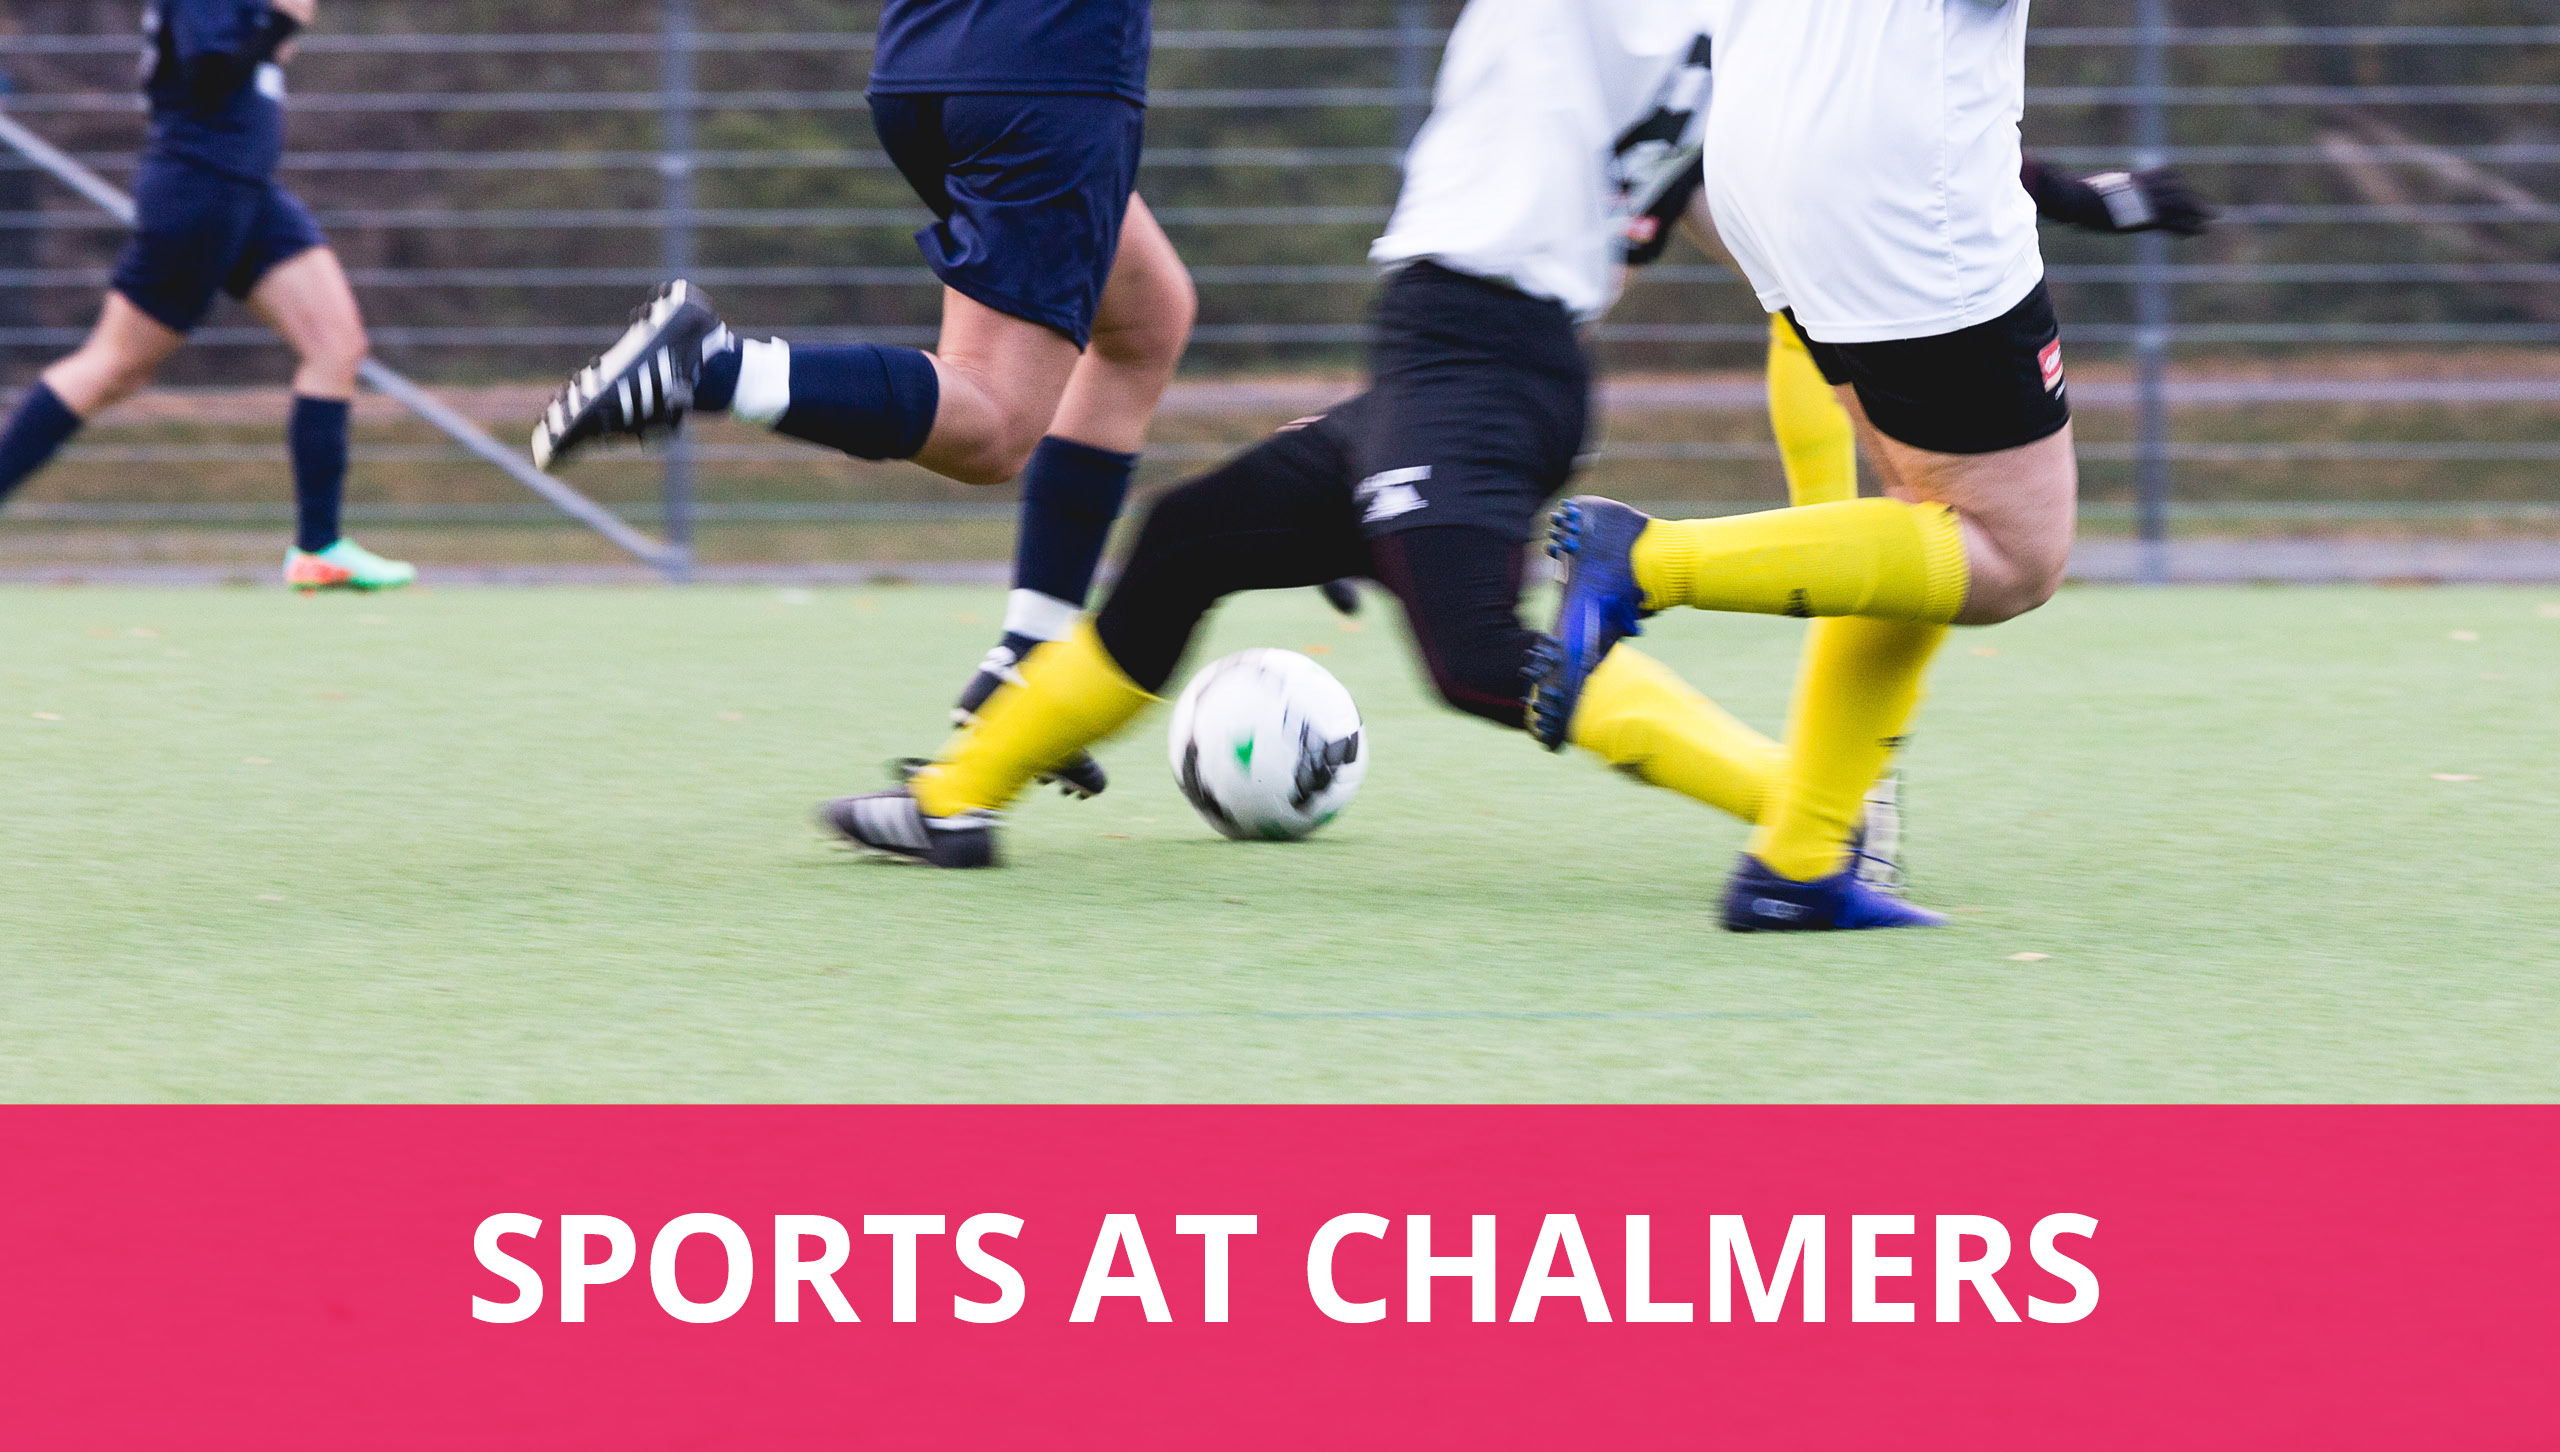 Sports at Chalmers